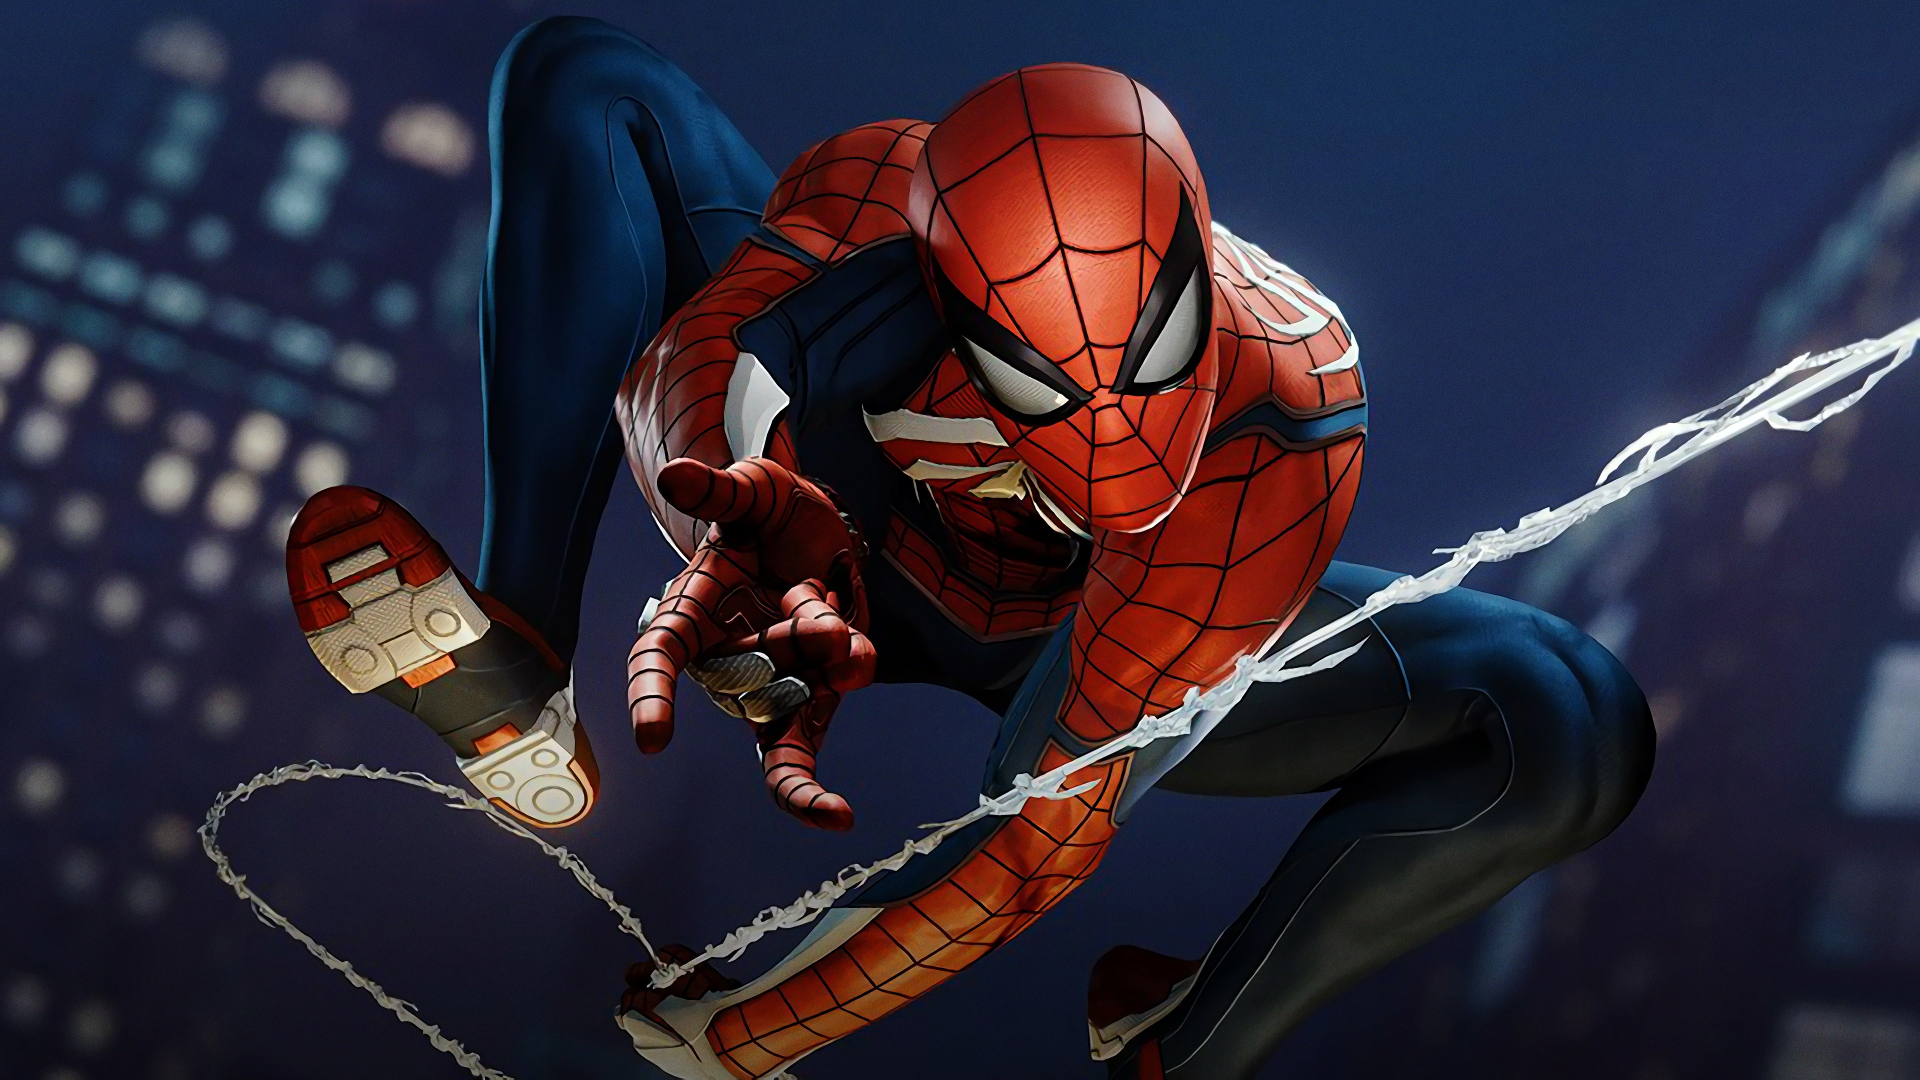 Free Download Spider Man Ps4 Spider Man Web Swing 4k Ultra Hd Wallpaper 3840x2160 For Your Desktop Mobile Tablet Explore 25 Ps4 Spider Man Wallpapers Ps4 Spider Man Wallpapers Spider Man